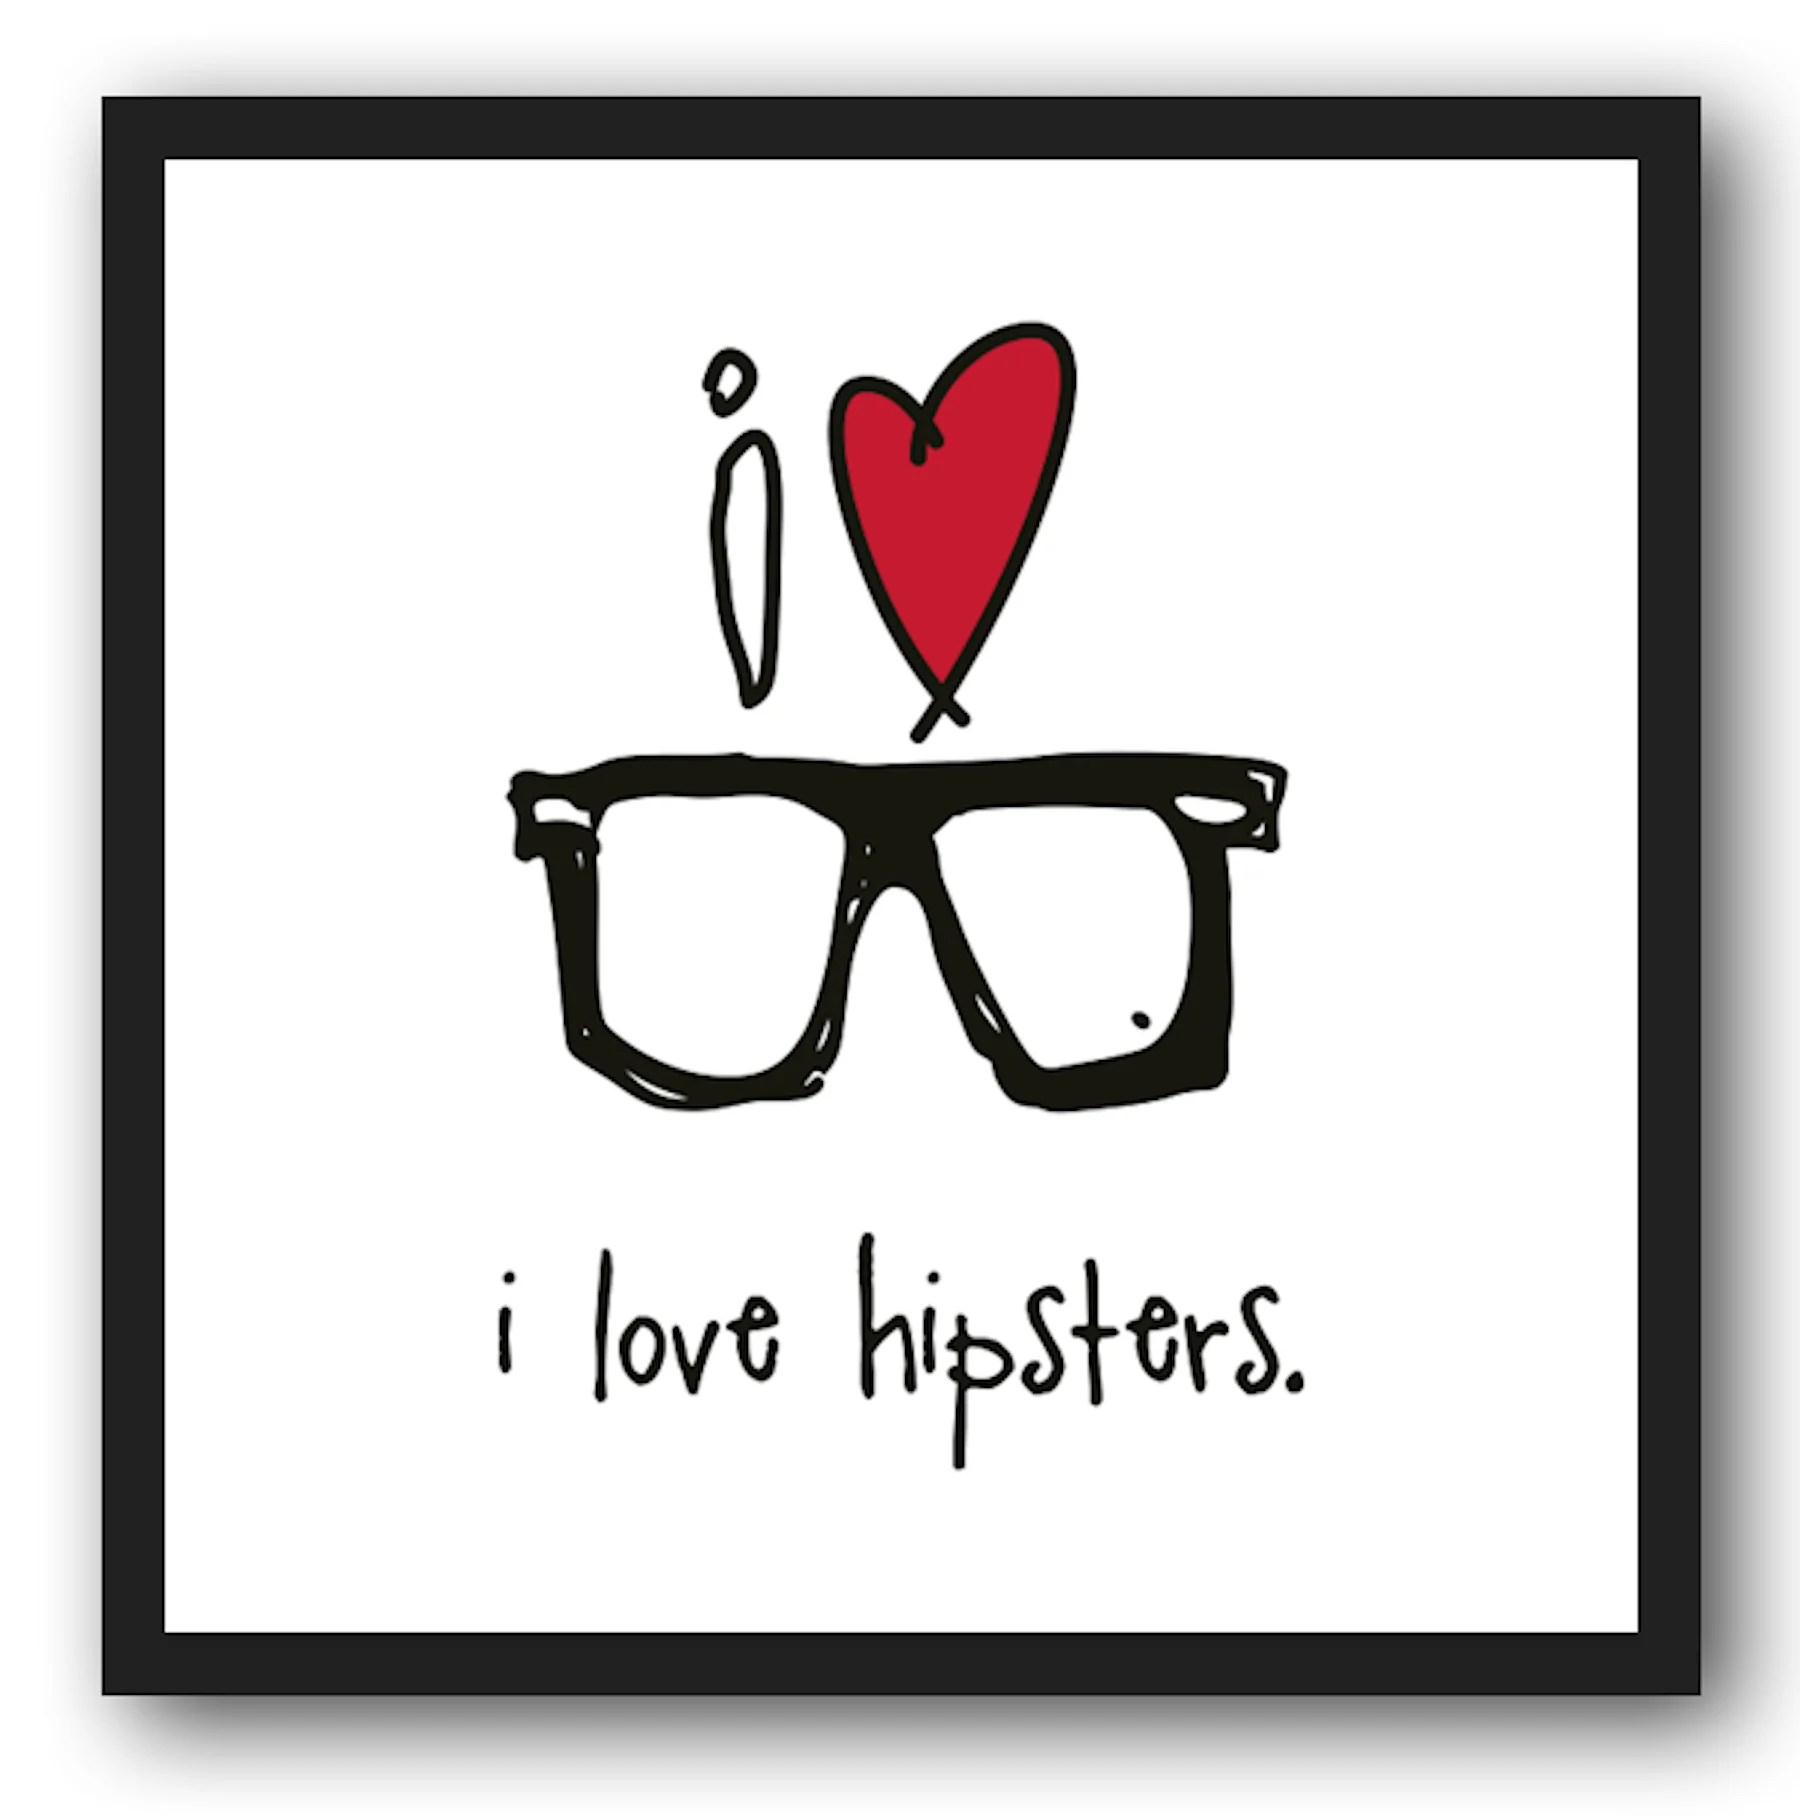 12x12 Poster I Love Hipsters 12x12 Framed Poster Alex And Asher